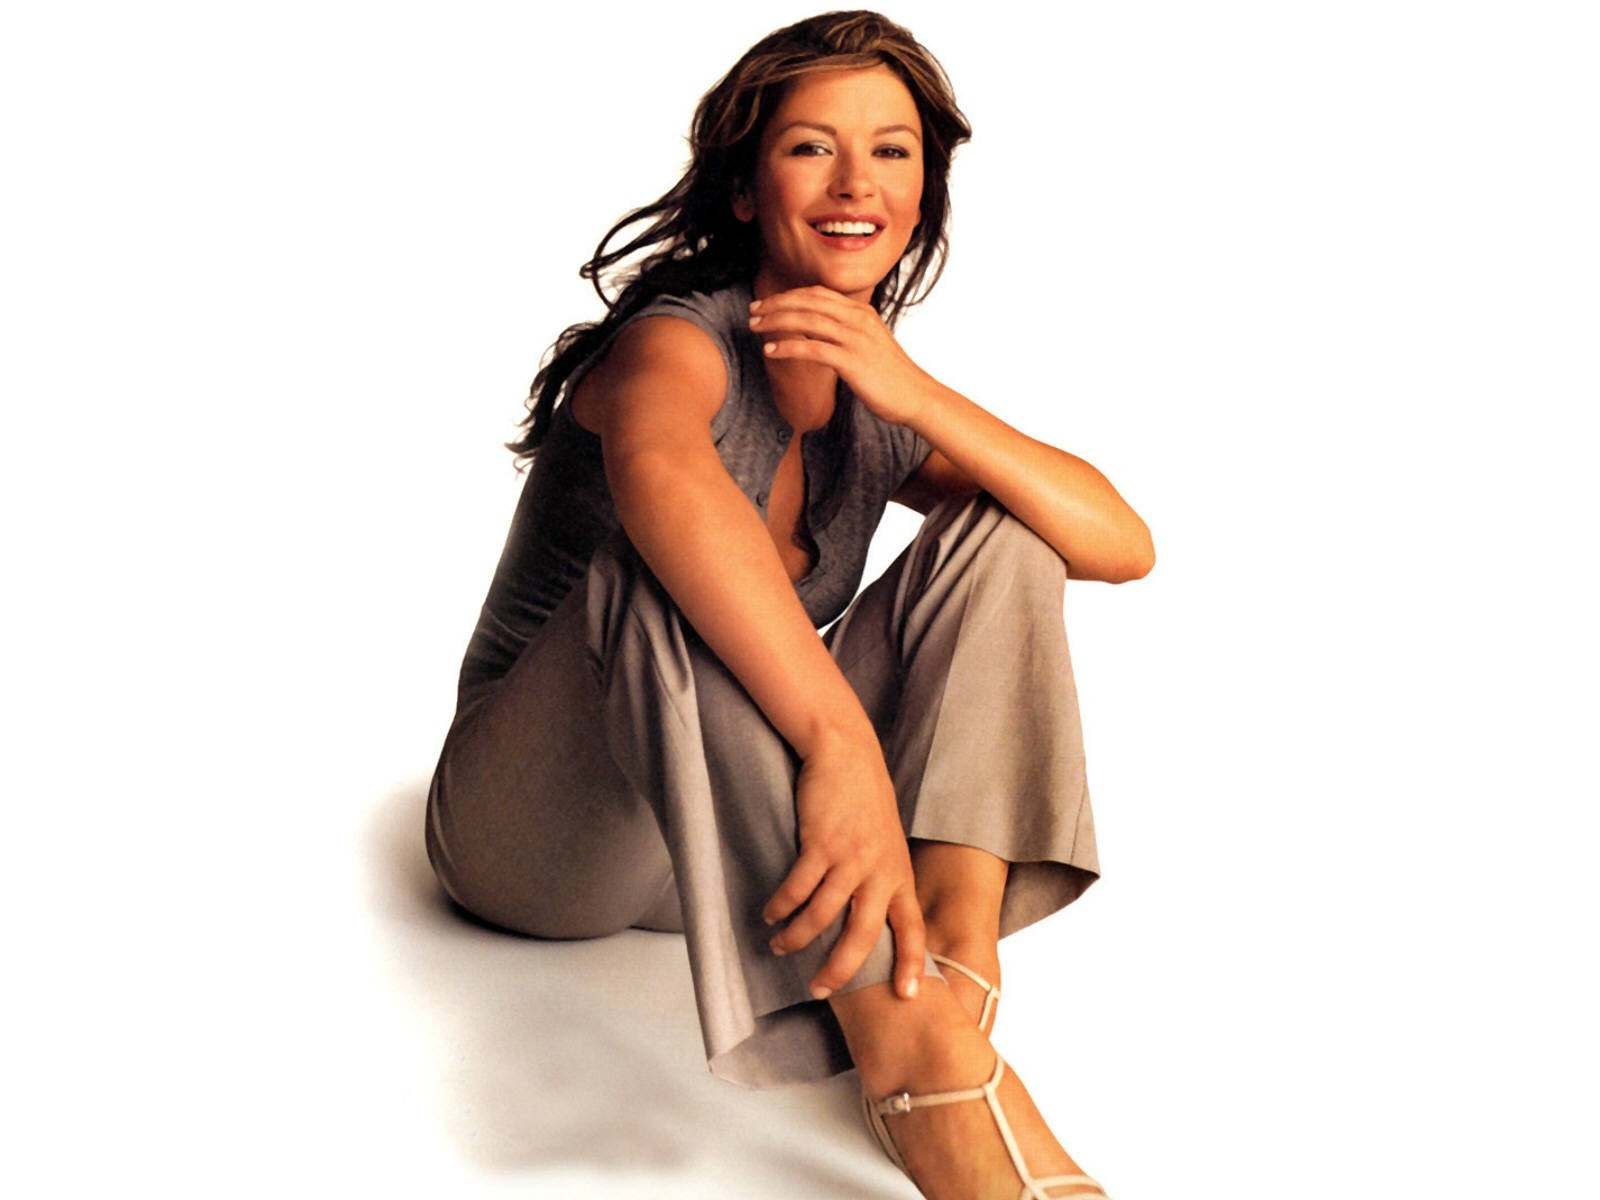 Wallpaper di Catherine Zeta-Jones - 21